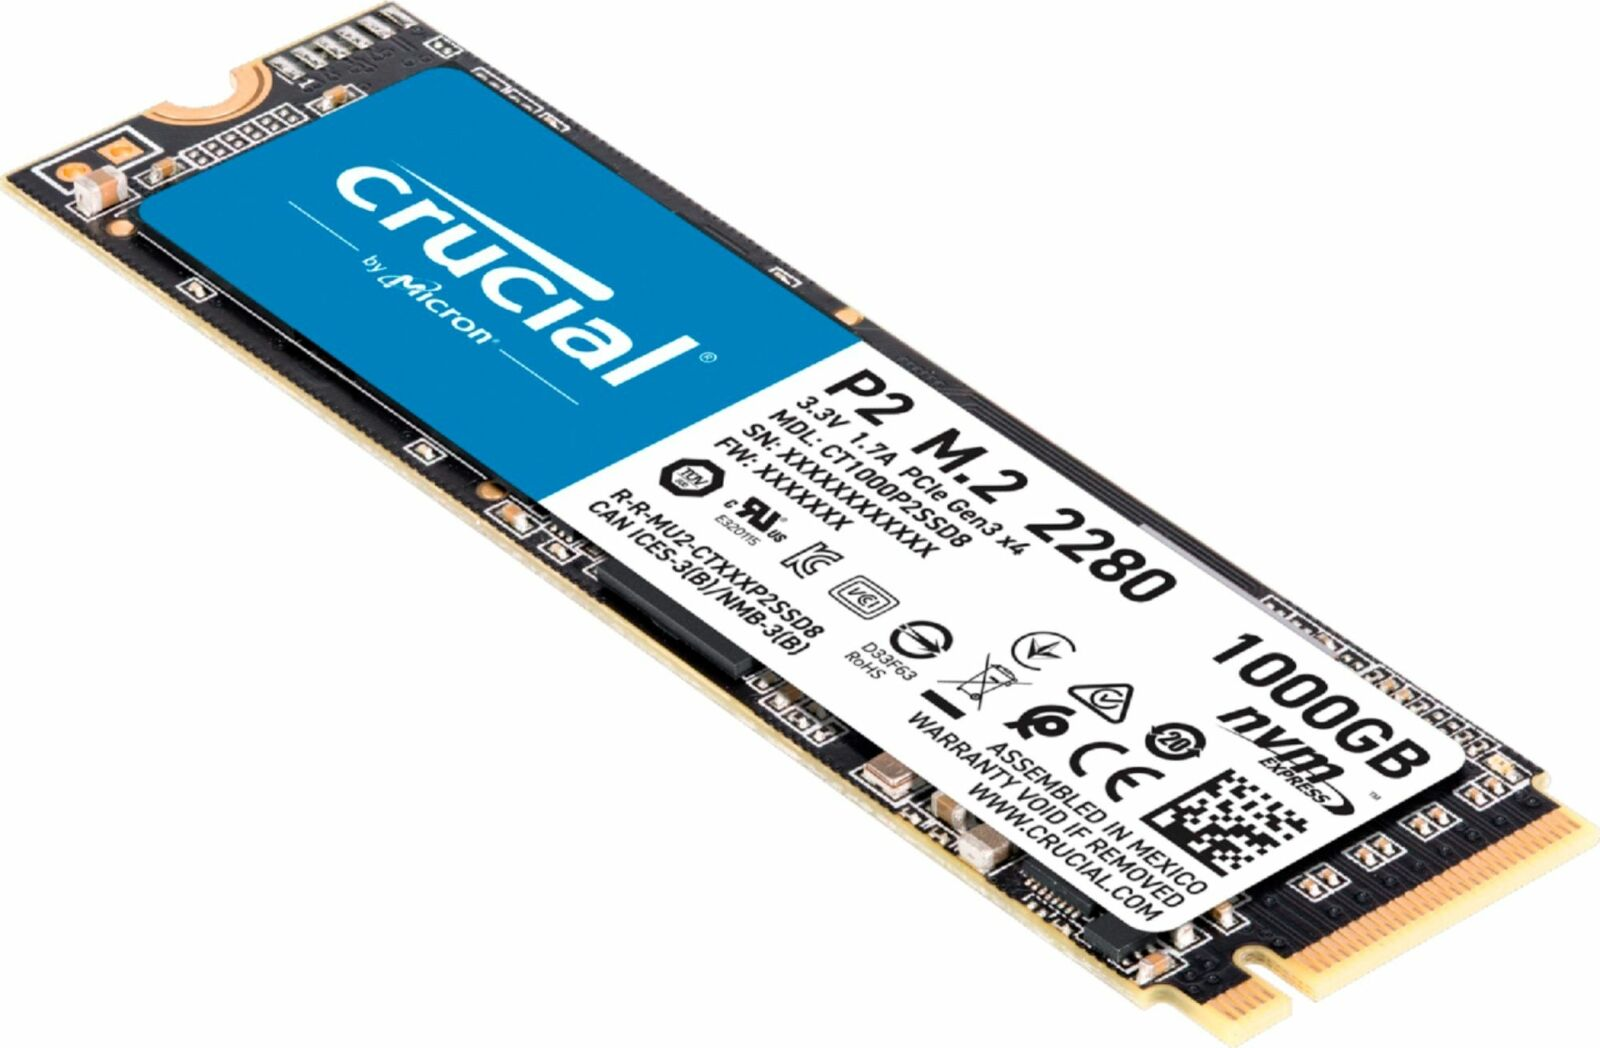 Crucial - P2 1TB 3D NAND NVMe PCIe M.2 Solid State Drive. Buy it now for 104.99